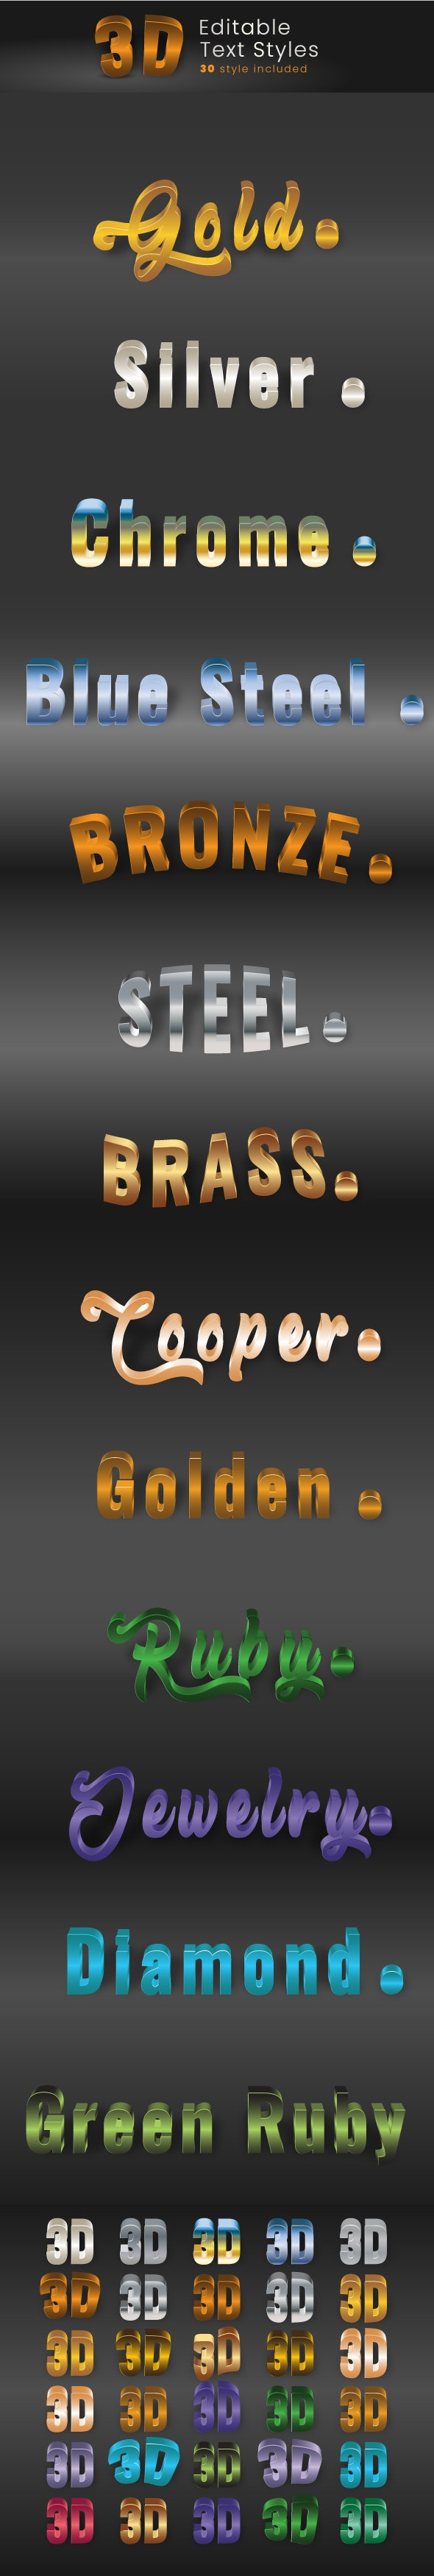 3D Text Effect Styles for Illustrator. - Illustrator Add-ons